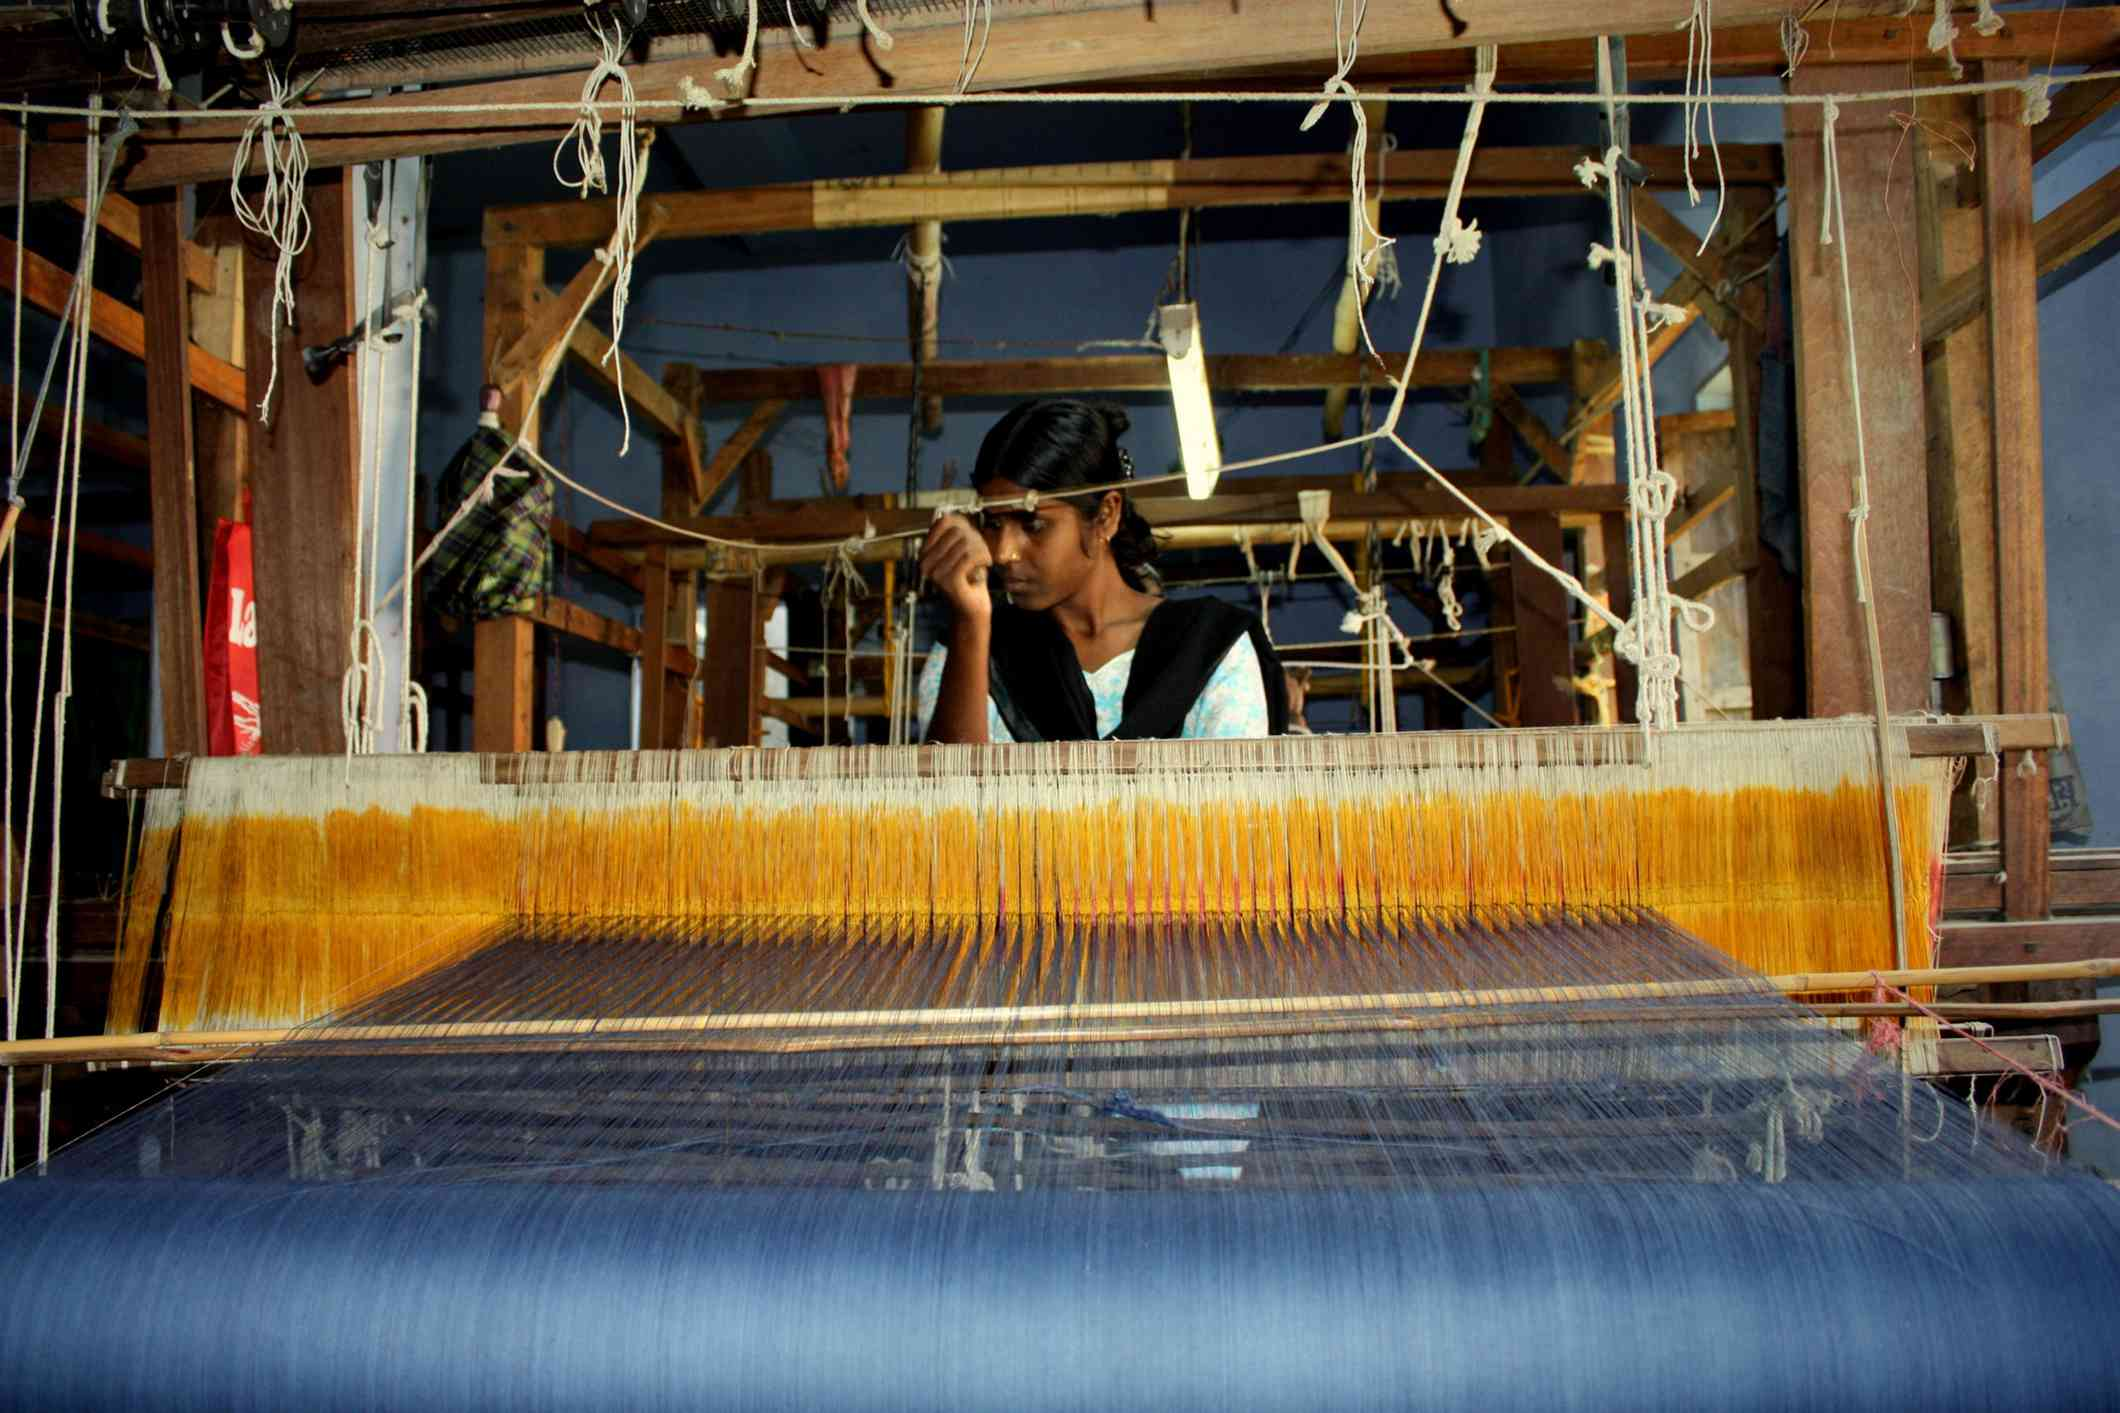 Young Indian woman sitting at a loom weaving fabric for a sari